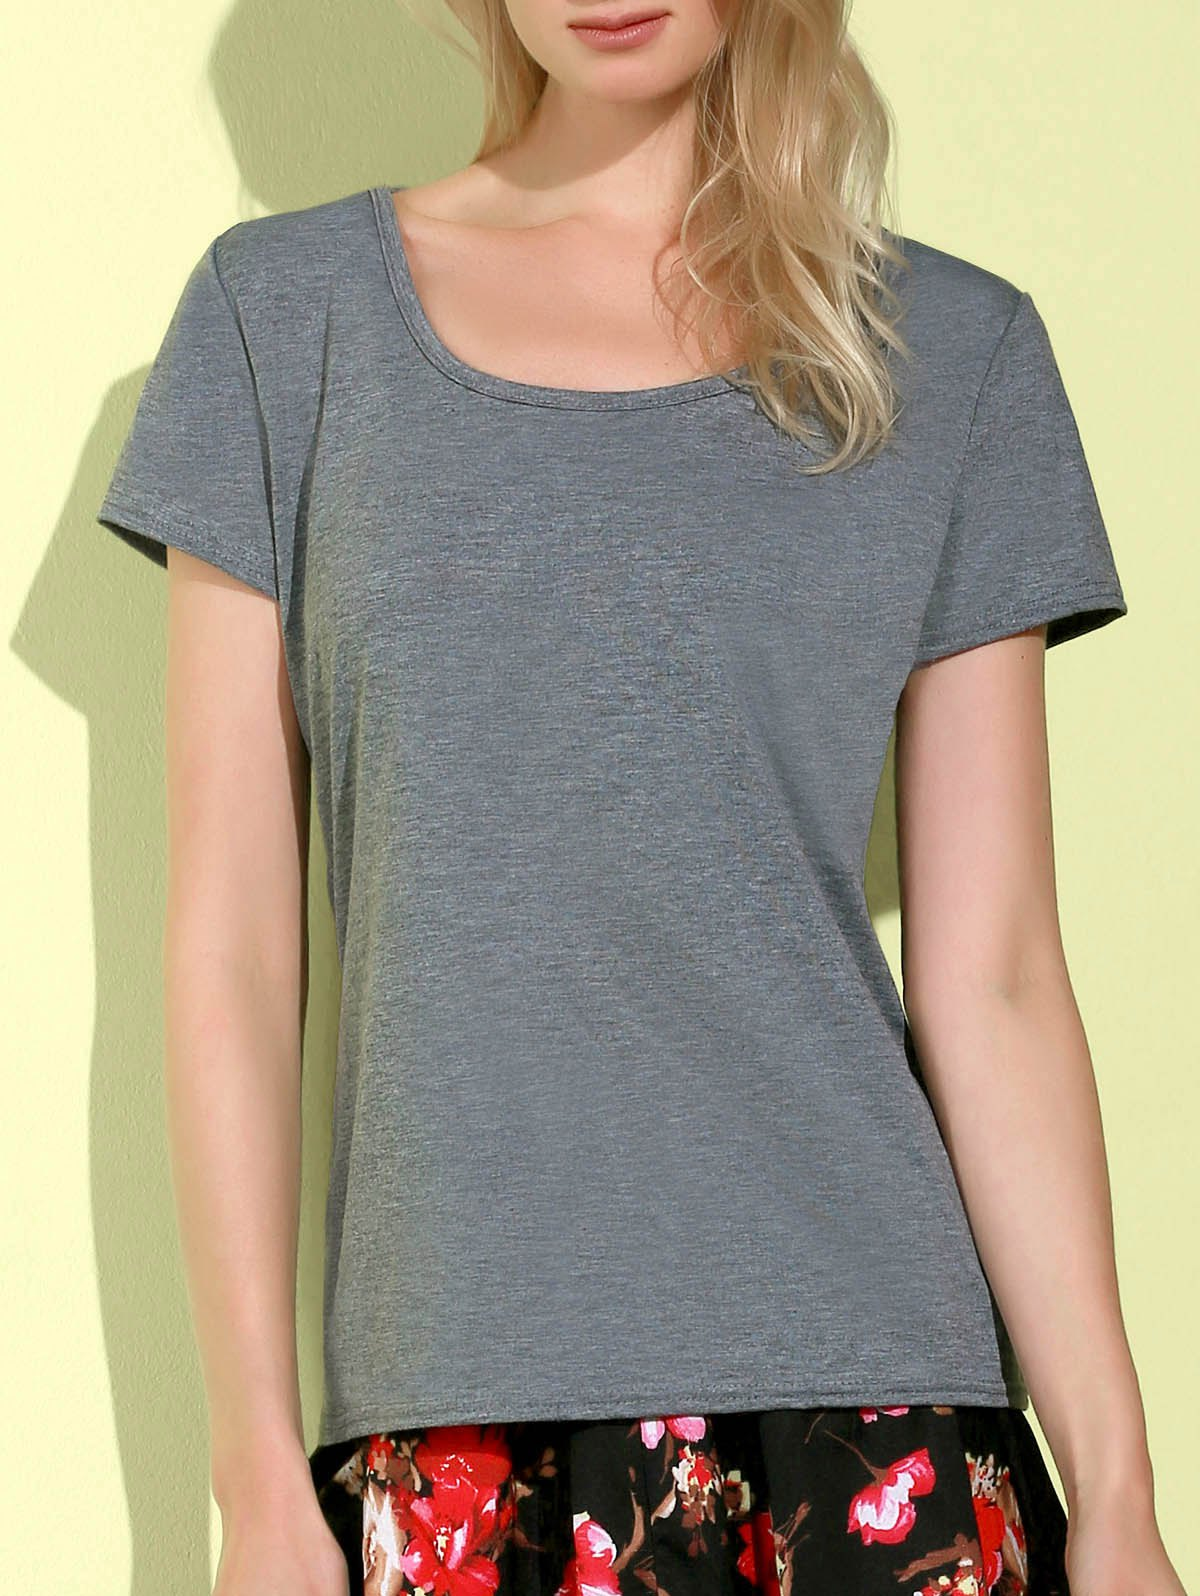 Trendy Simple Style Scoop Collar Short Sleeve Slimming Gray T-Shirt For Women